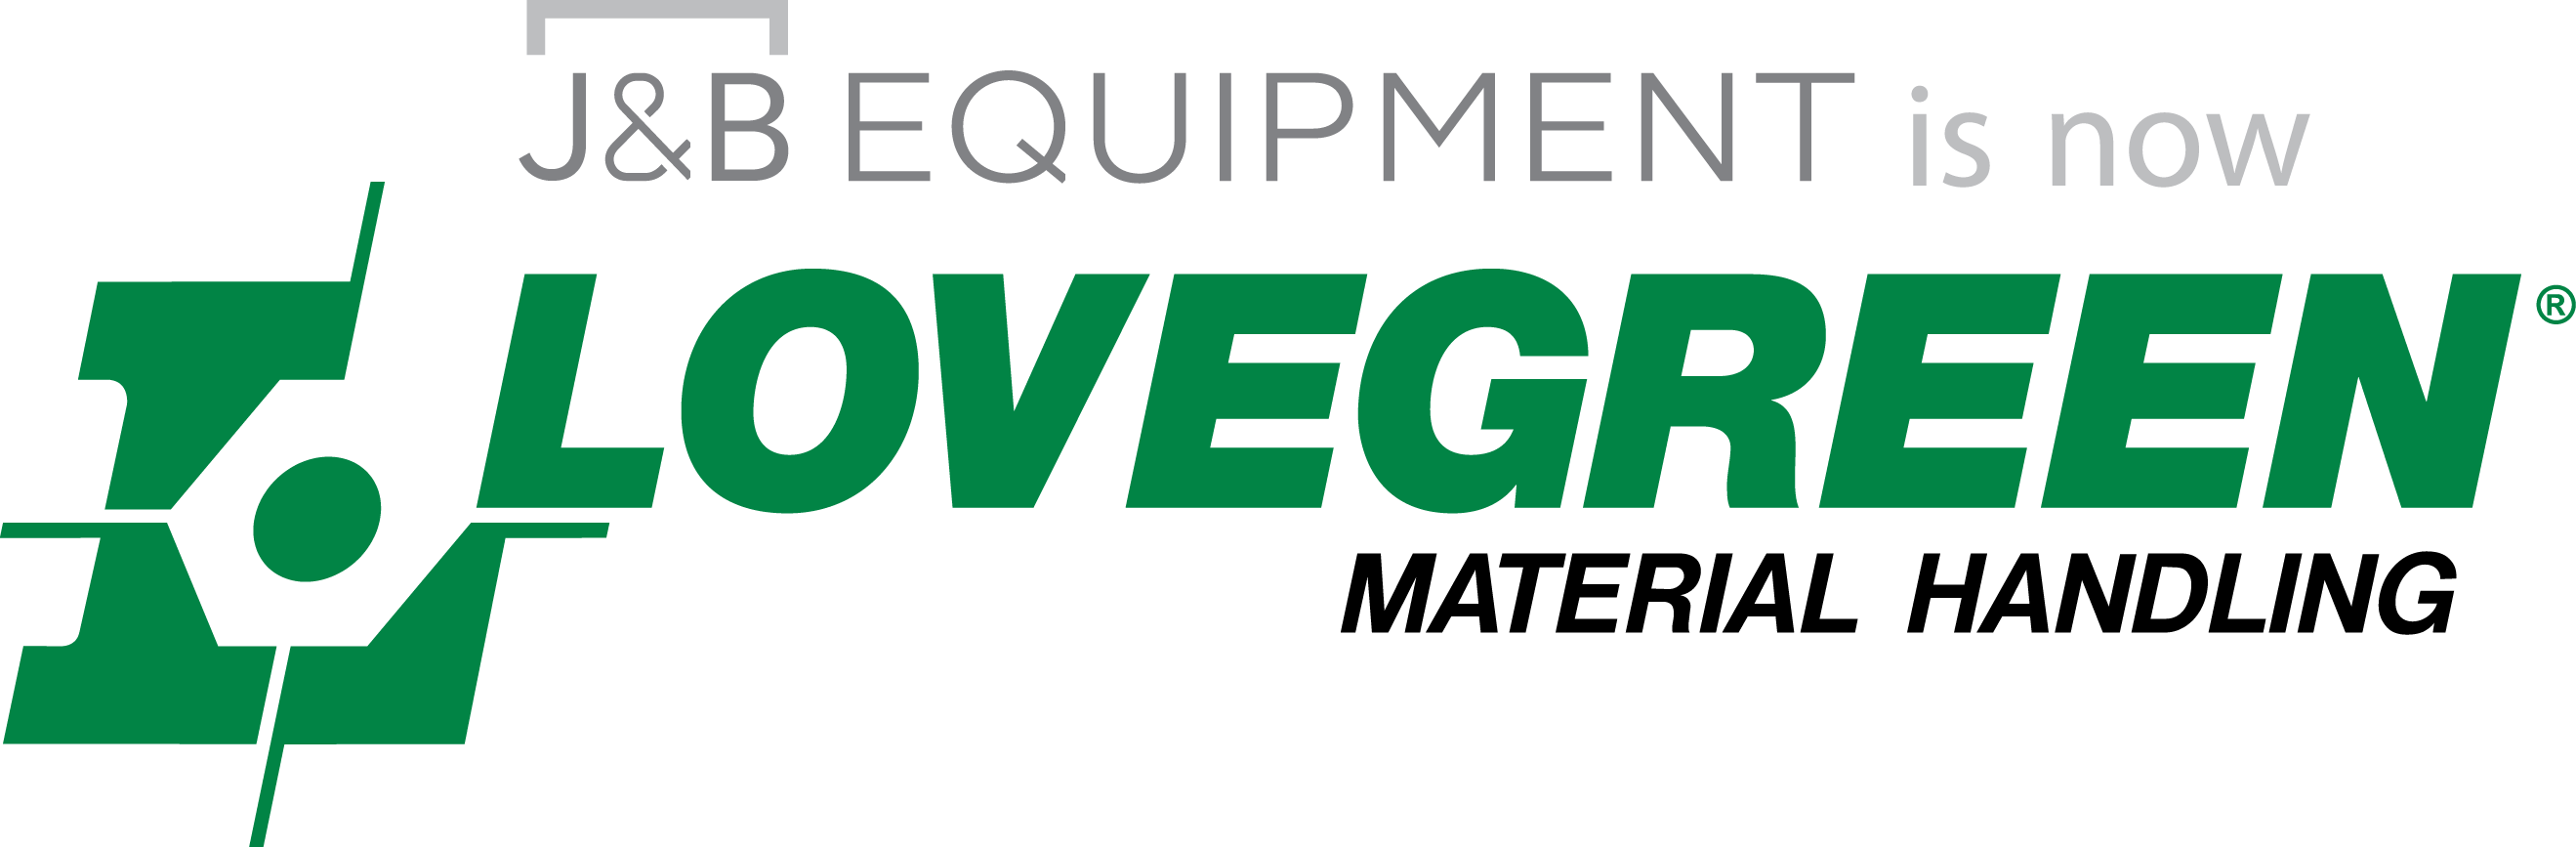 Lovegreen provides Professional Industrial Services, Millwrights, Rigging & Lifting services, Machine repairs, conveyor installation, factory relocation, Laser coupling alignment for industrial equipment